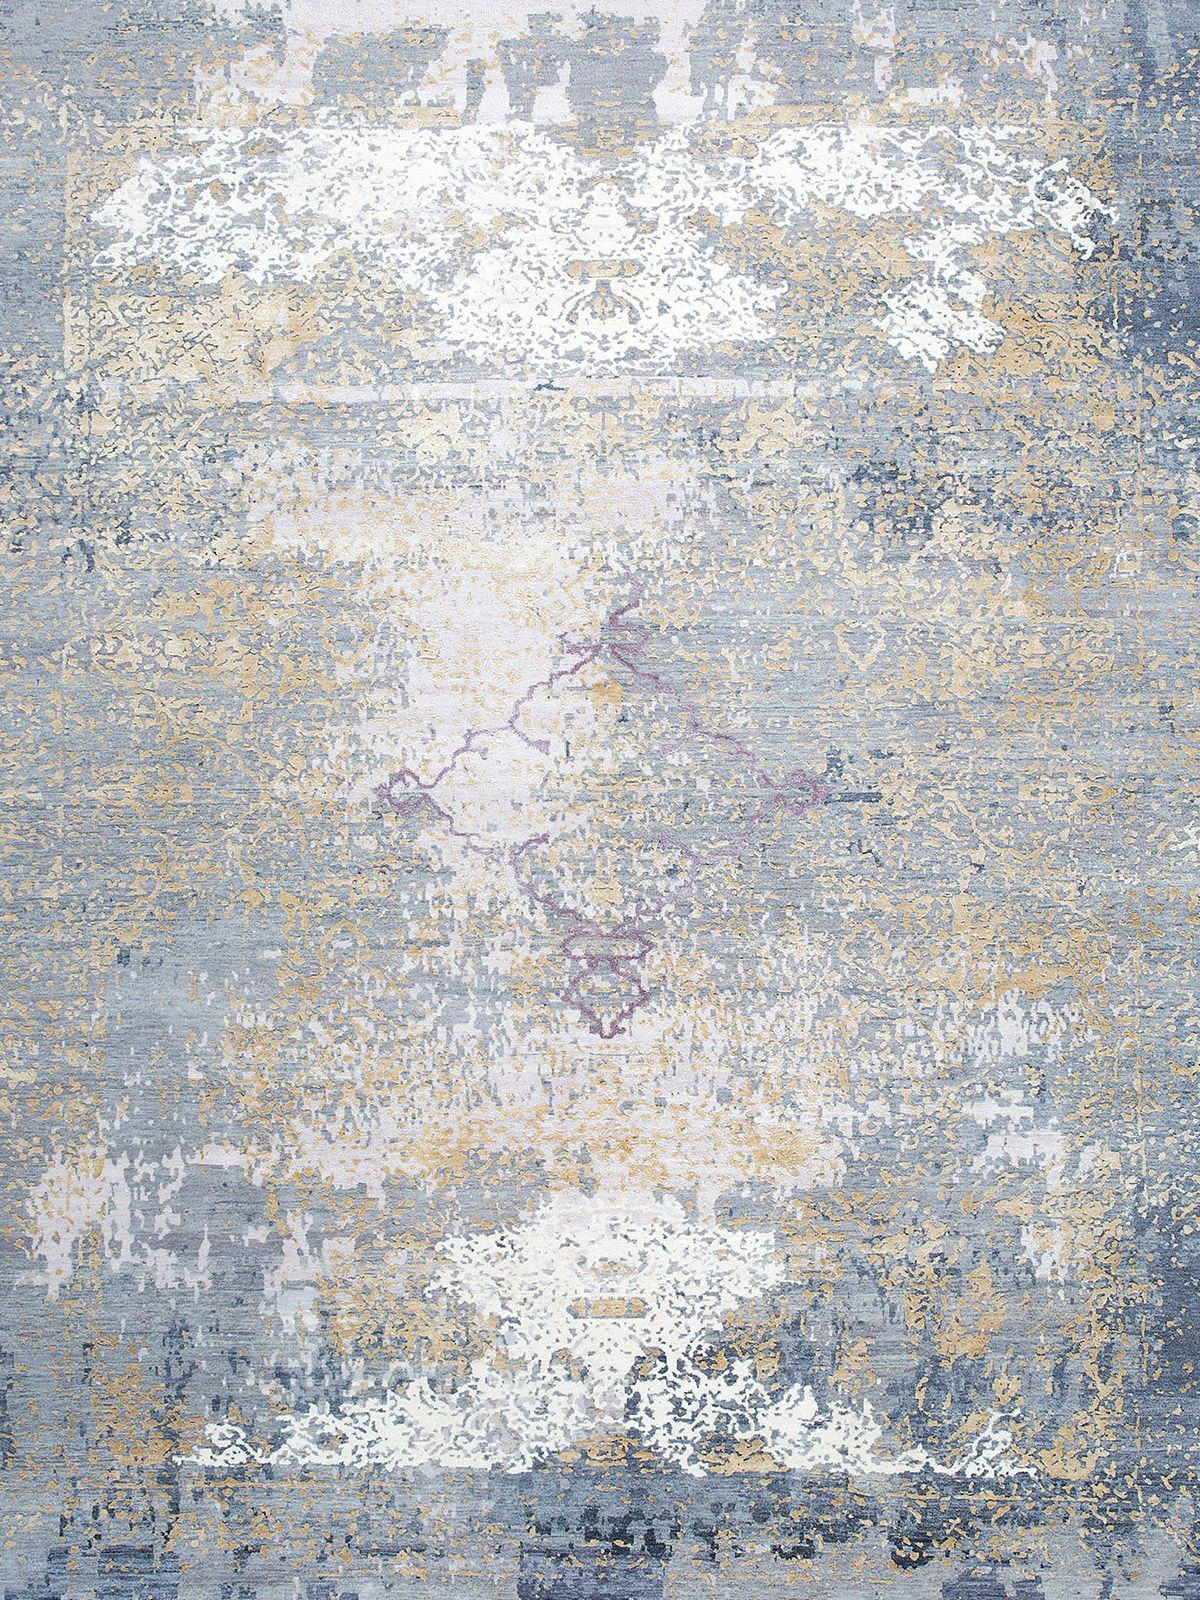 Blue Modern Wallpaper Texture Autumn Fb3 Grey Rug Rug Pinterest Leaves Autumn